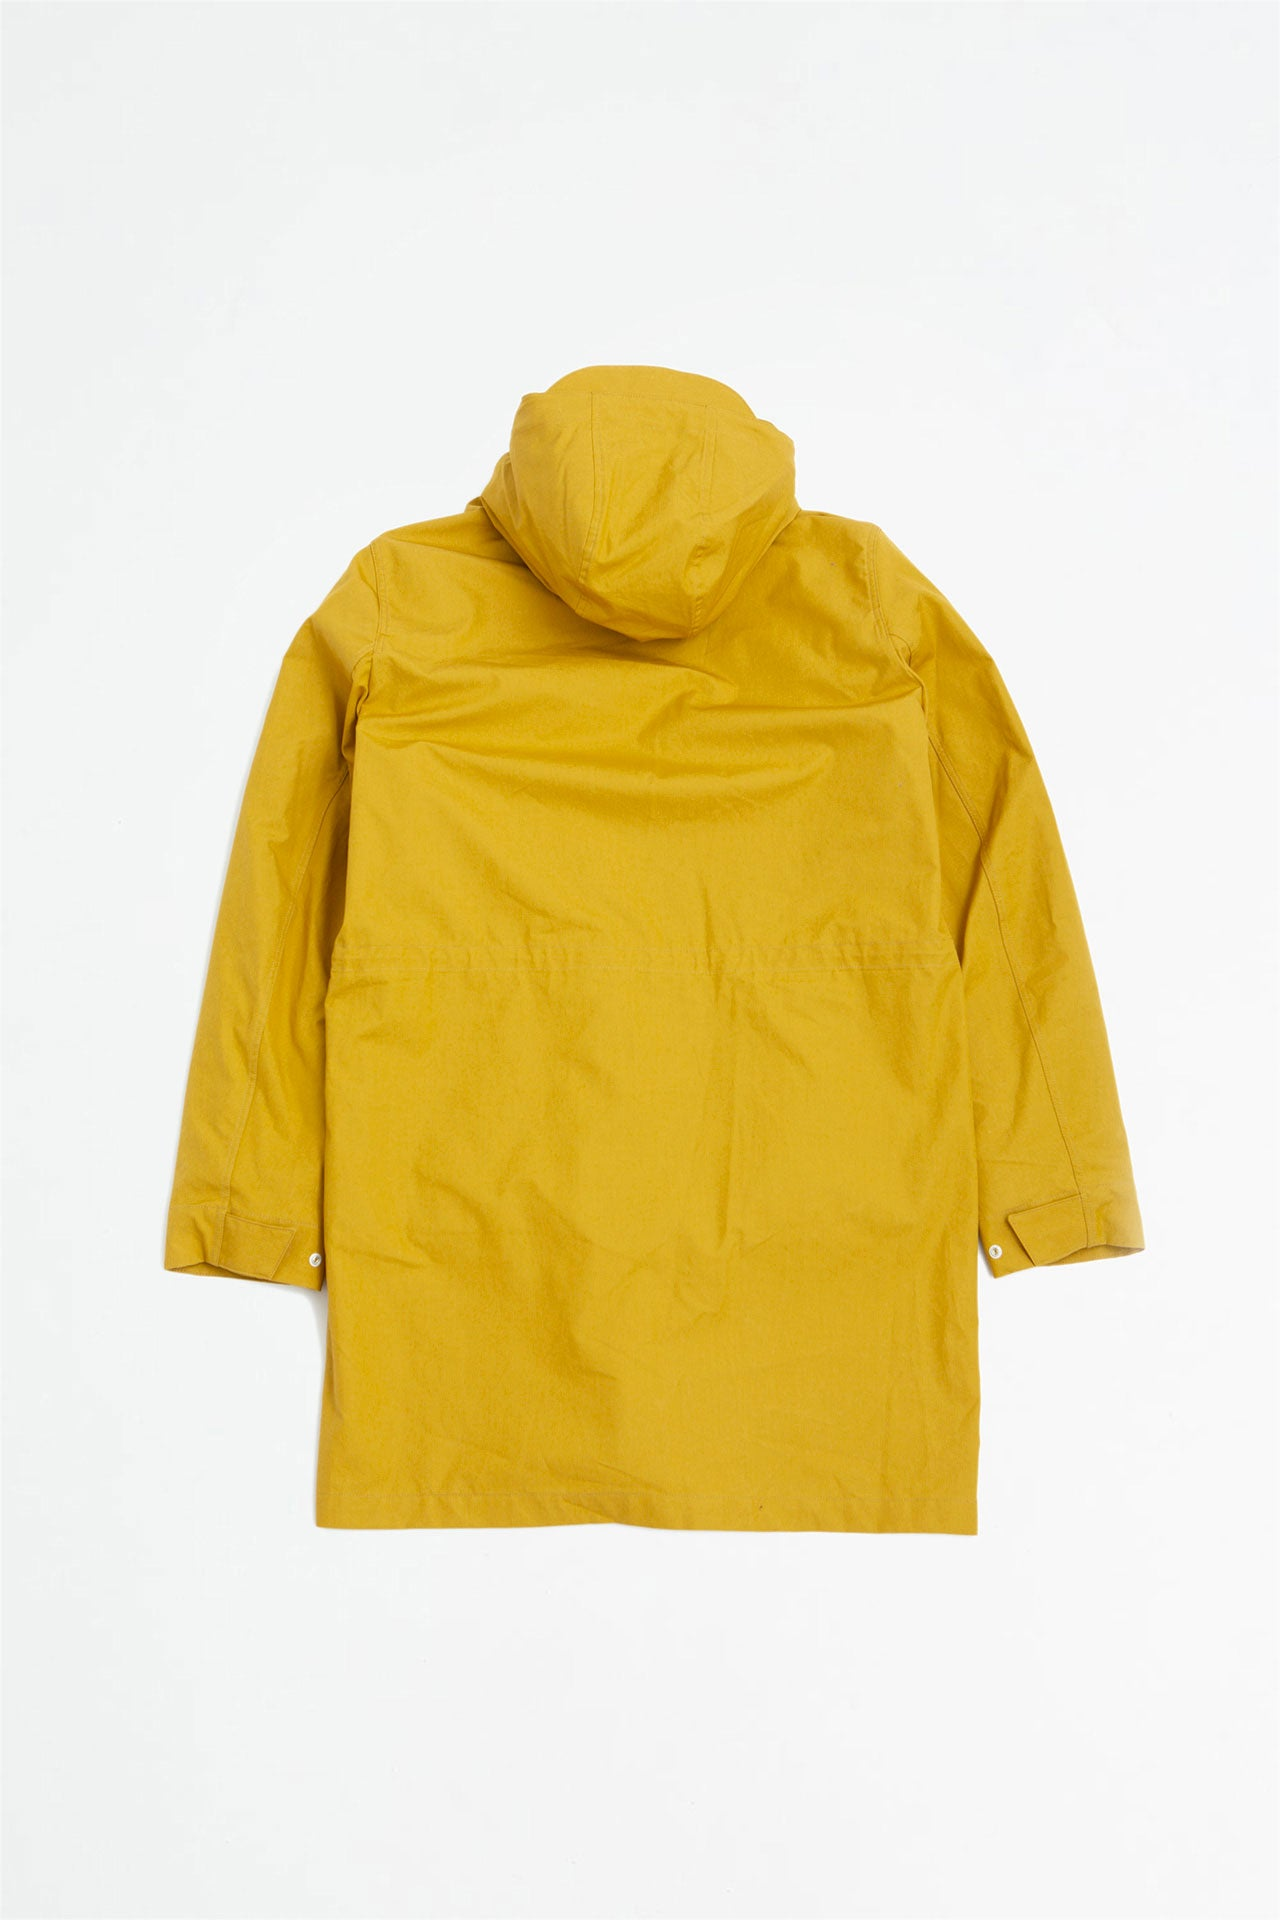 Elias Cambric Cotton montpellier yellow